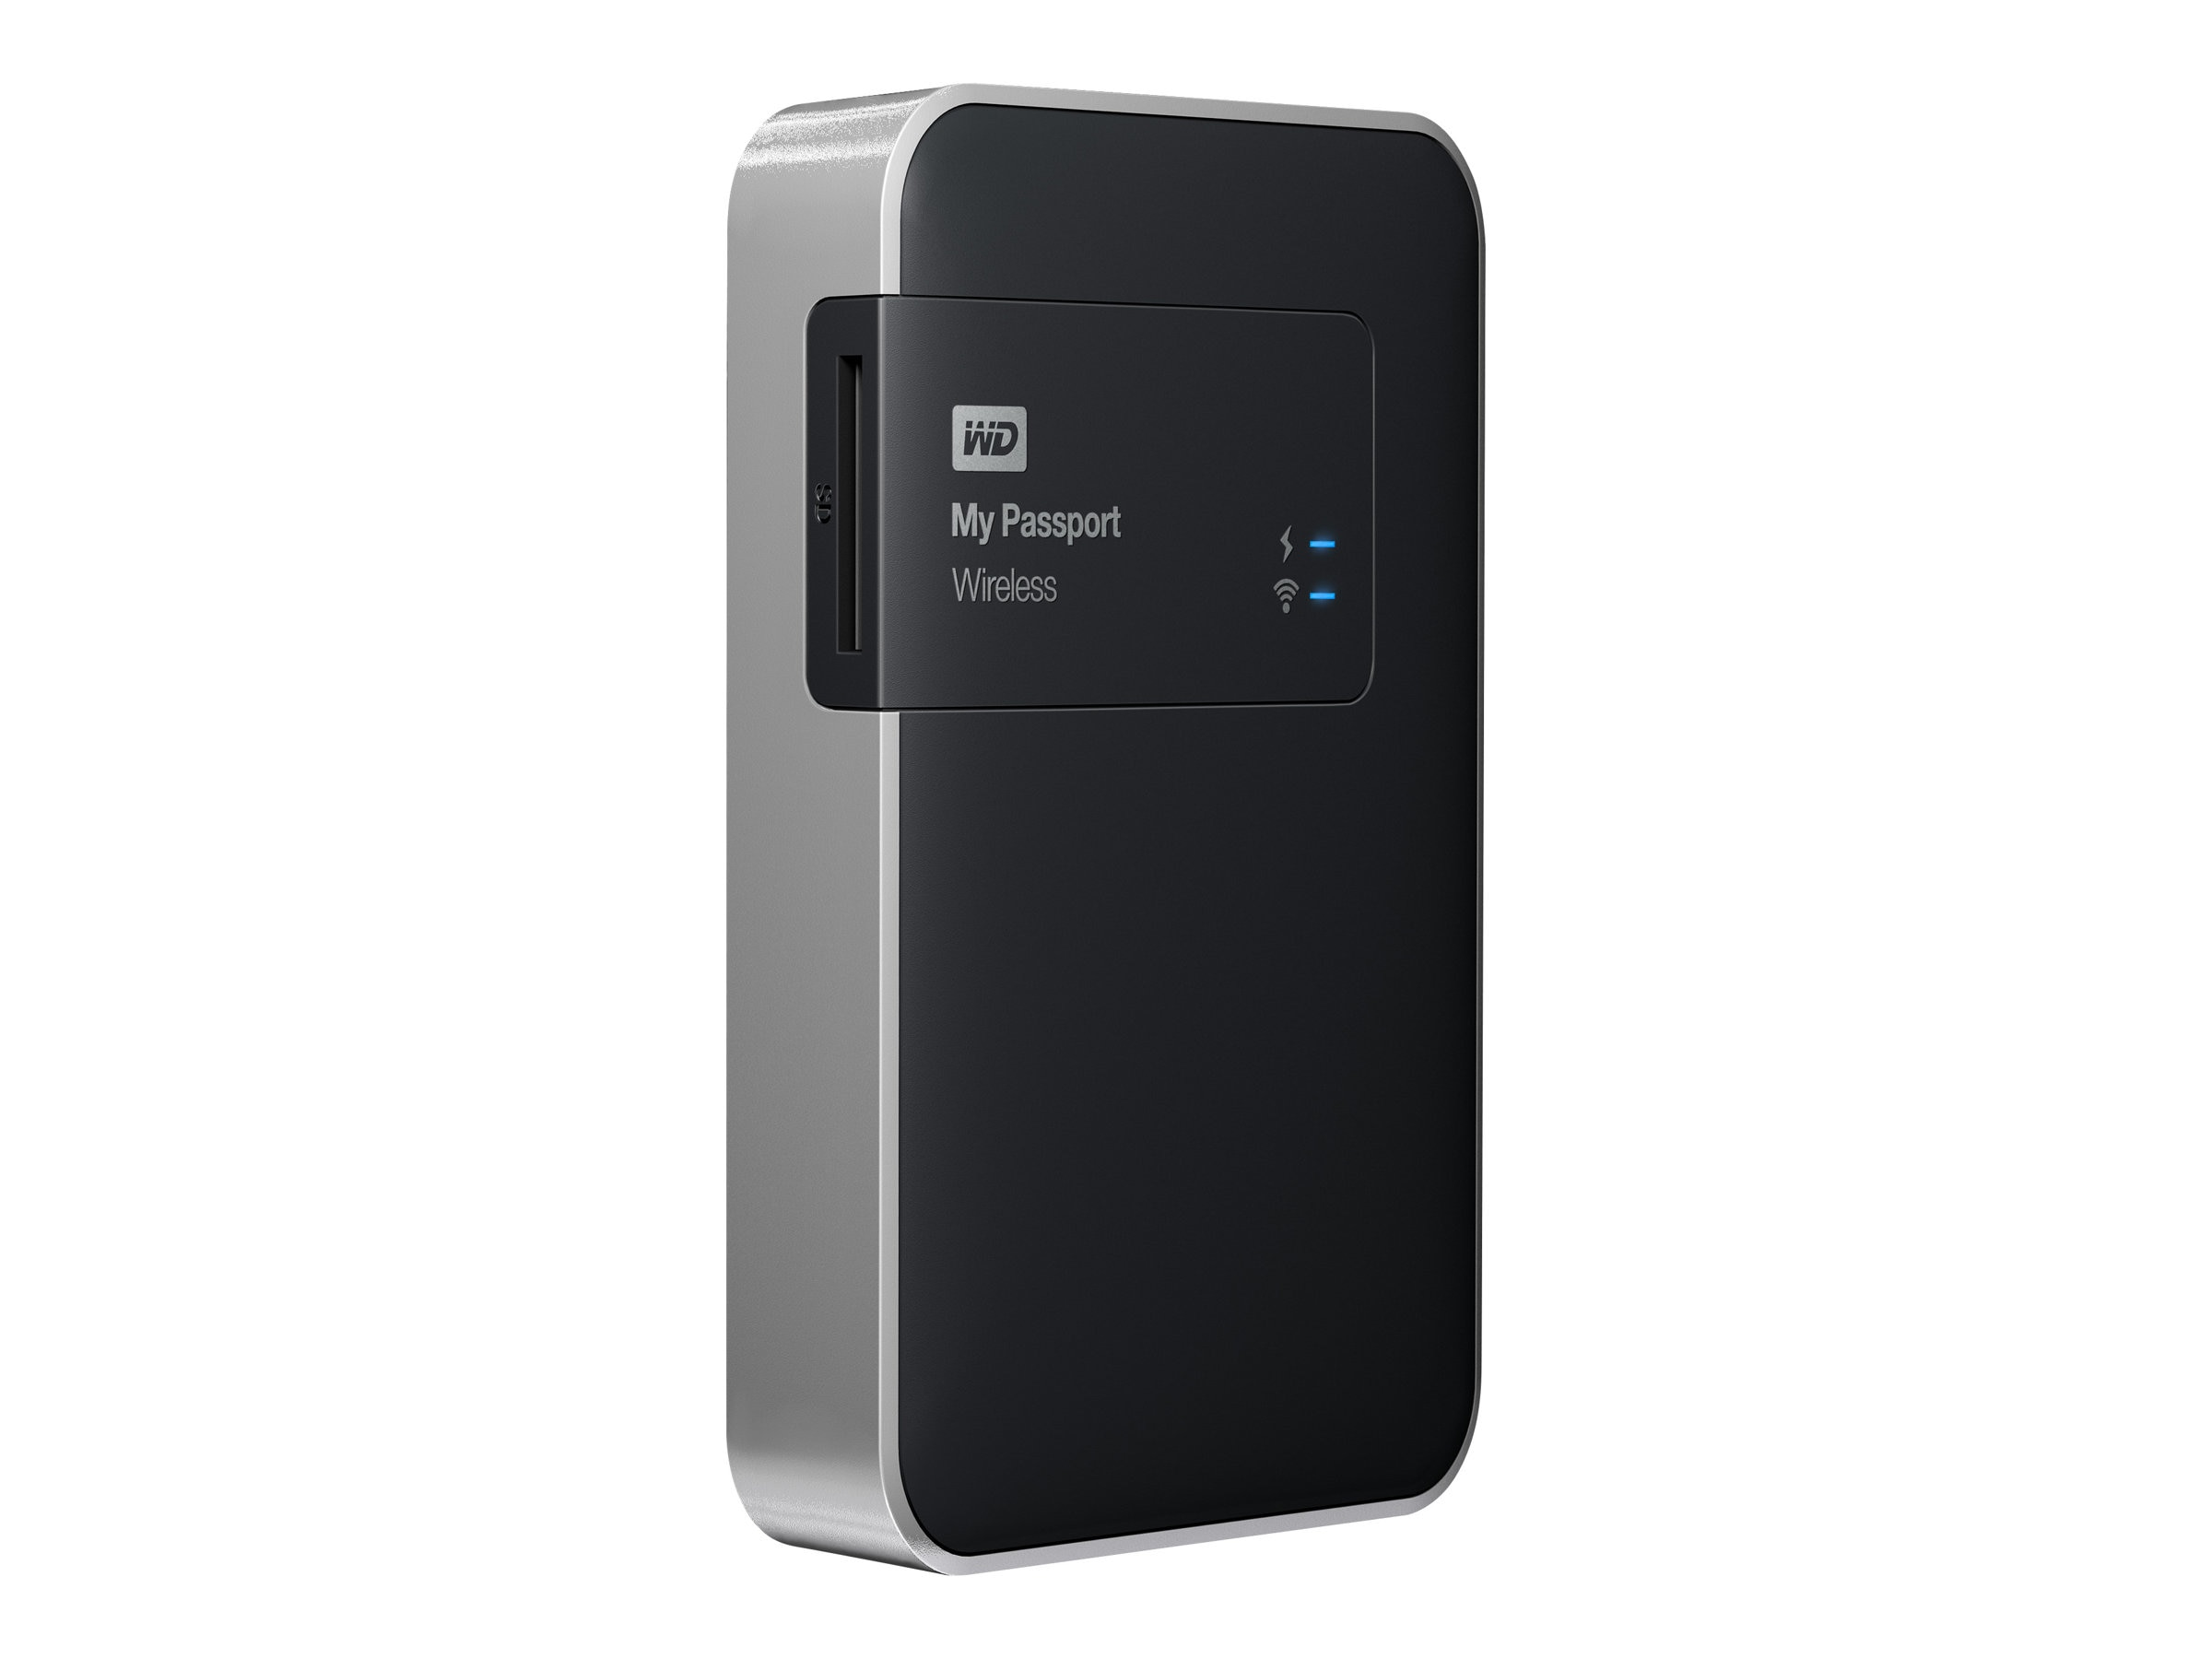 WD 1TB My Passport Wireless Storage - Black, WDBK8Z0010BBK-NESN